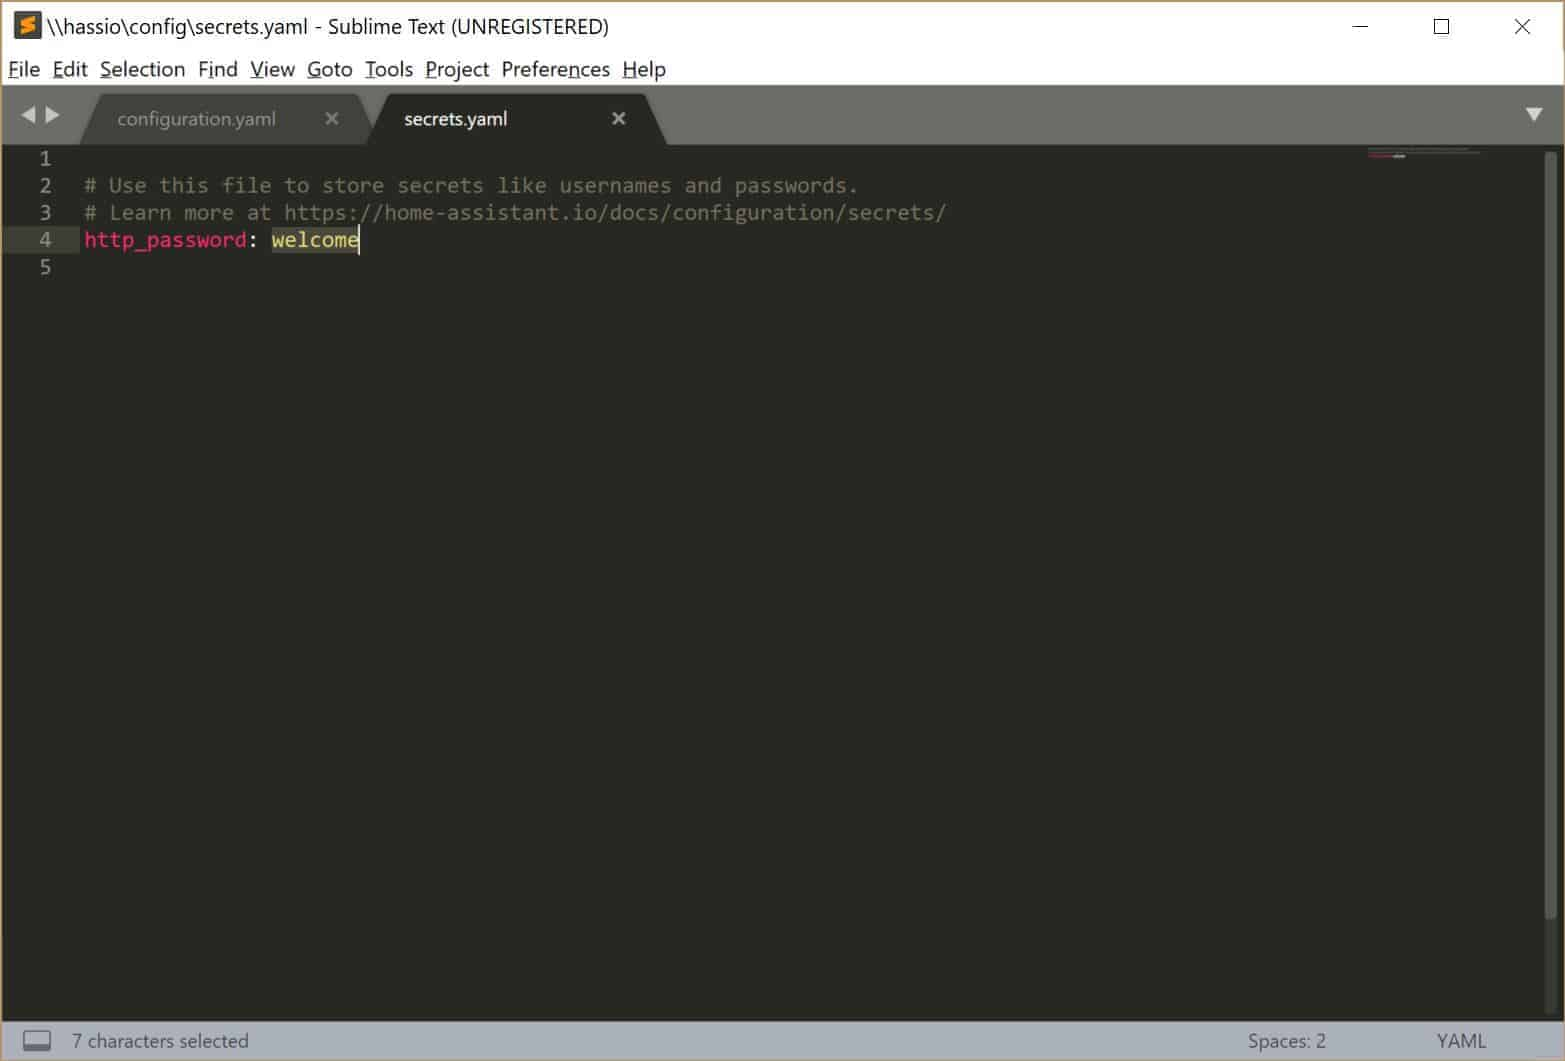 Setting the Home Assistant password in the secrets.yaml file